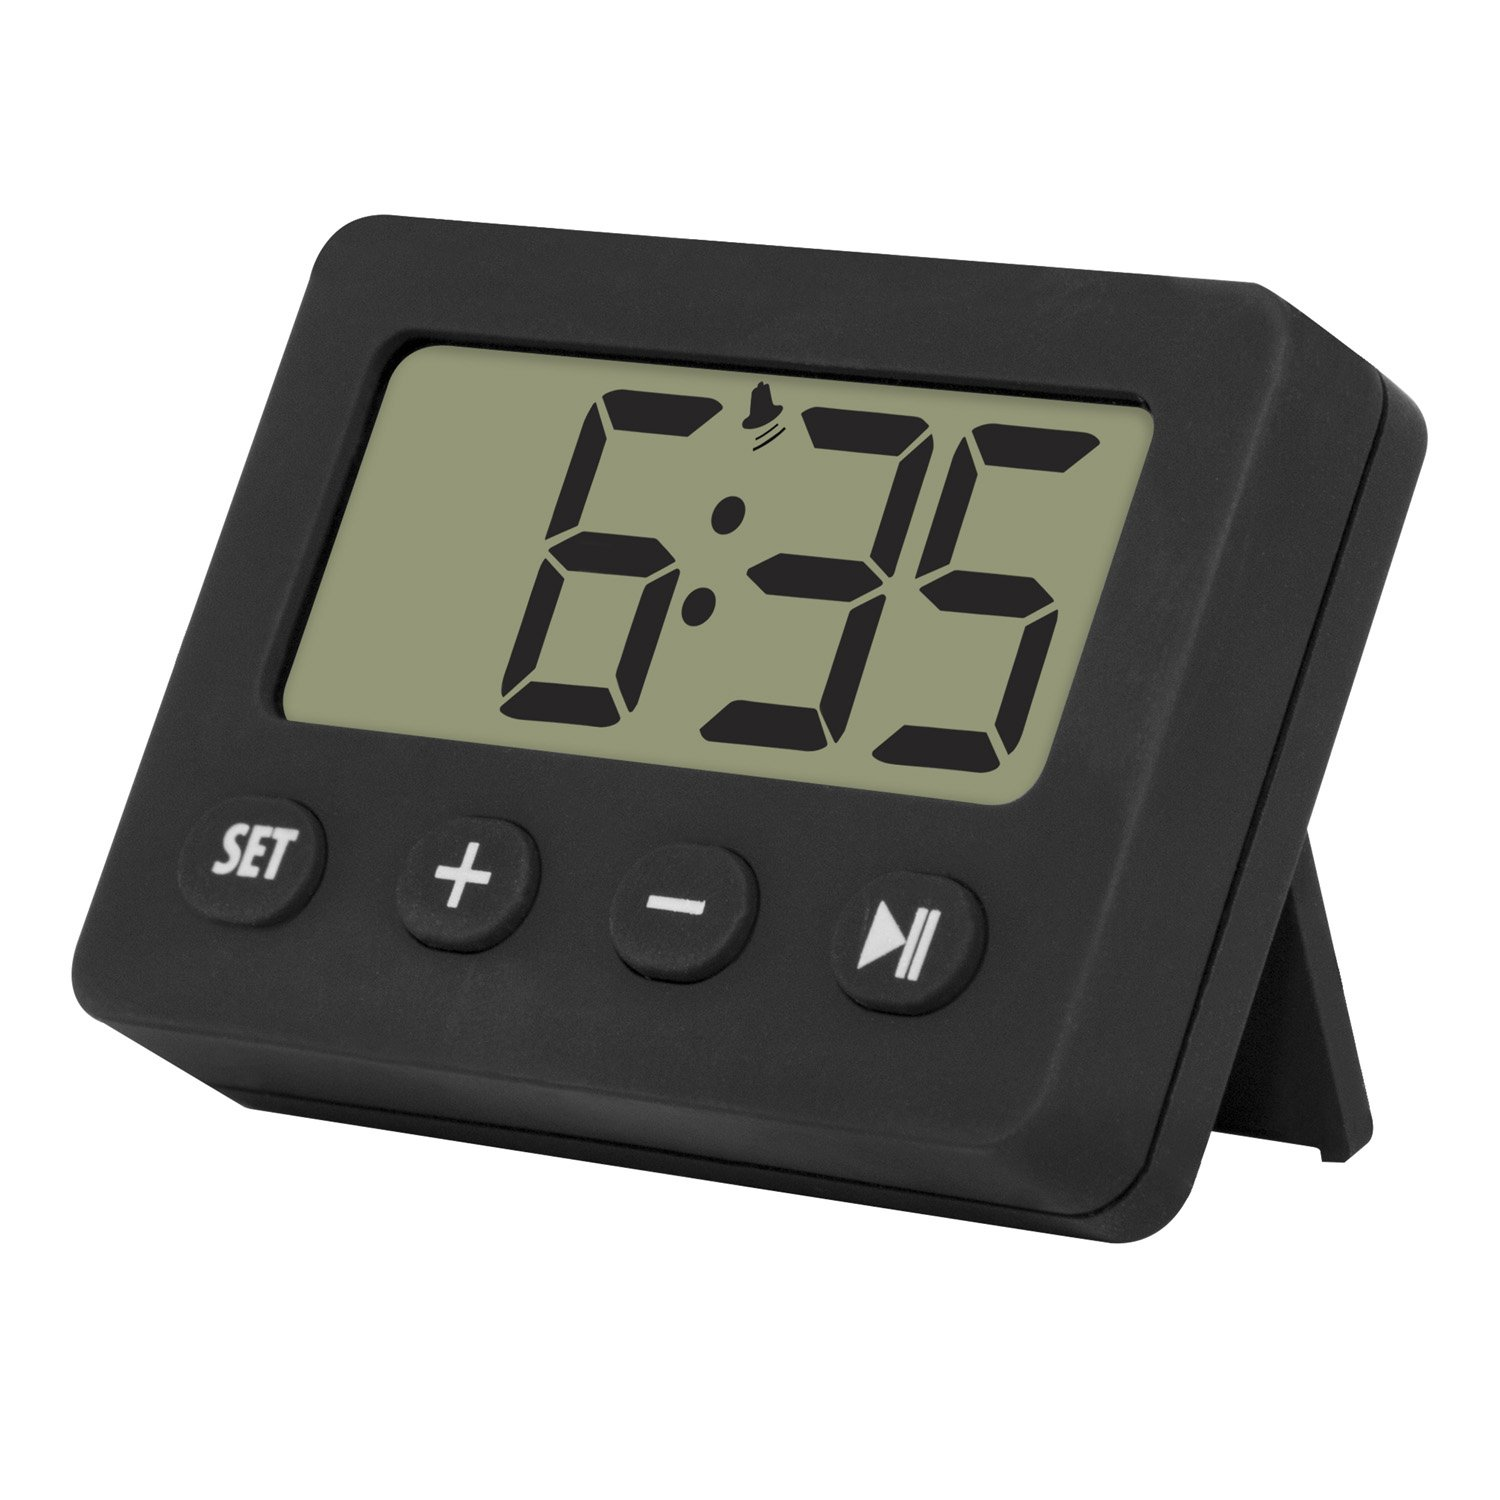 La Crosse Technology 60.2014.01 Digital Timer with Alarm and Stopwatch Black